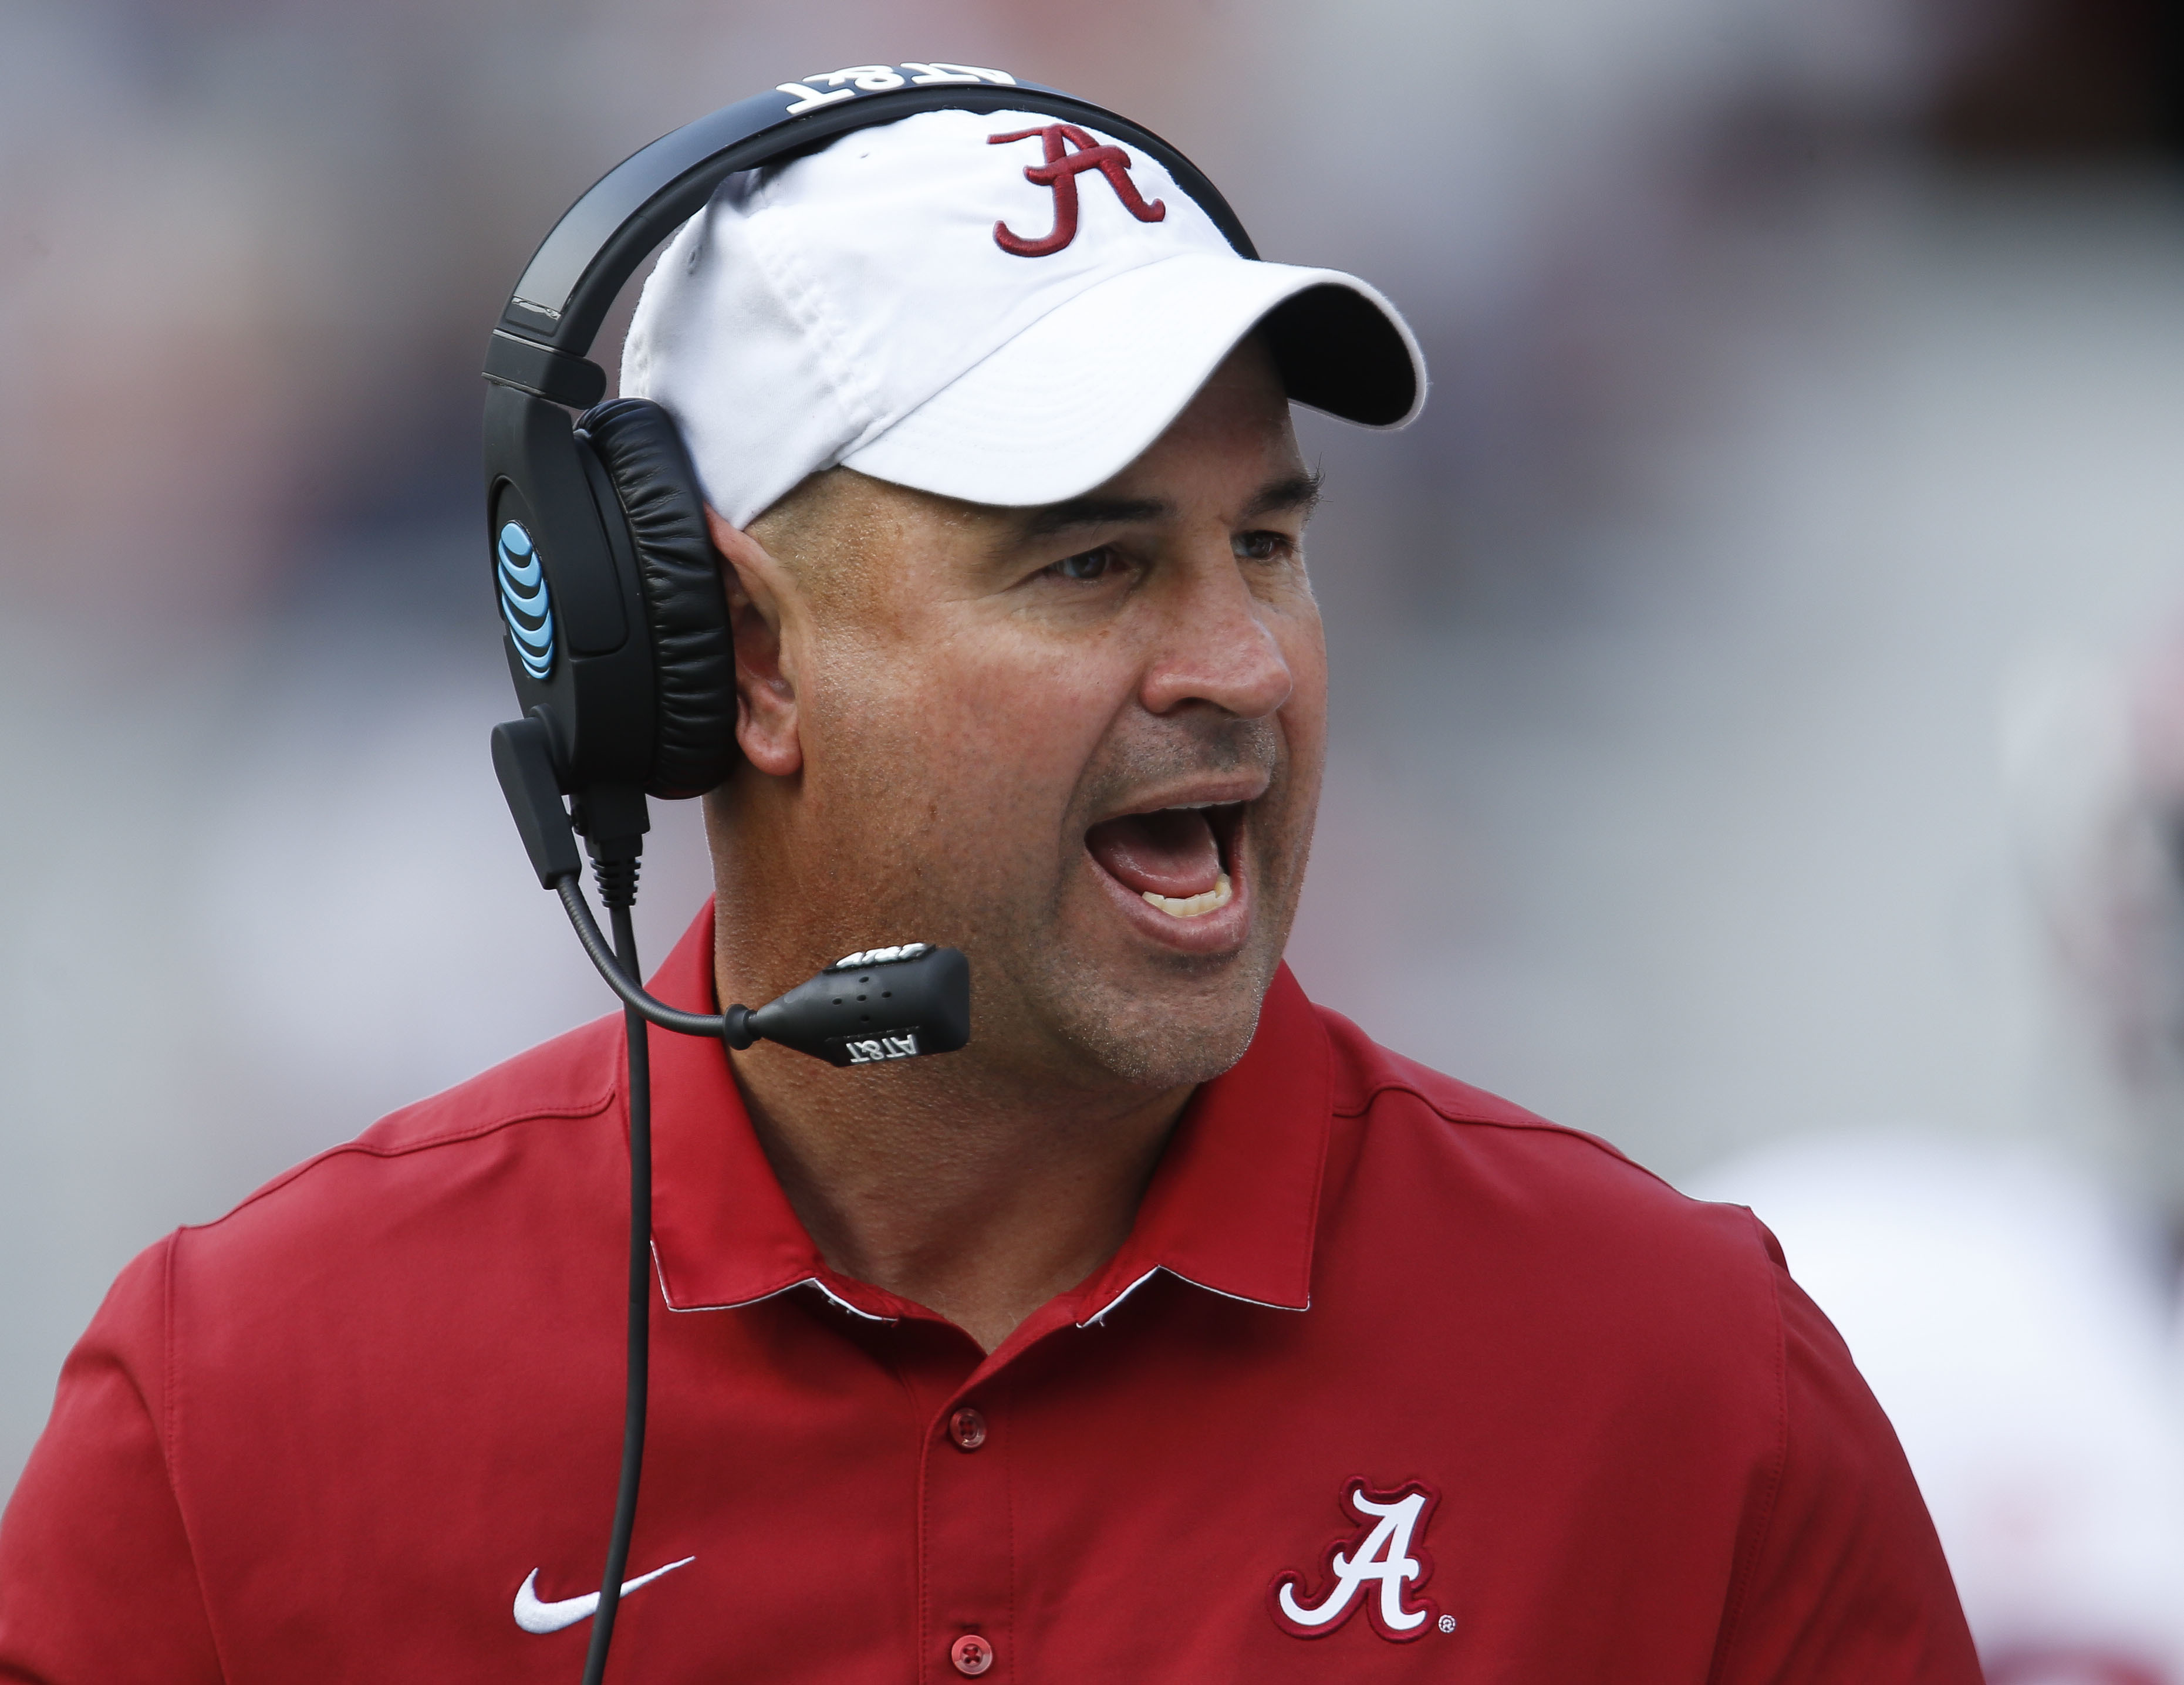 FILE - In this April 22, 2017, file photo, Alabama defensive coordinator Jeremy Pruitt, coach of the White team, yells to his team during Alabama's annual A-Day spring NCAA college football game in Tuscaloosa, Ala. Tennessee has hired Pruitt as its head coach on Thursday, Dec. 7, 2017, capping a tumultuous search that cost an athletic director his job as the Volunteers attempt to recover from one of their most disappointing seasons.(Gary Cosby Jr./The Tuscaloosa News via AP, File)